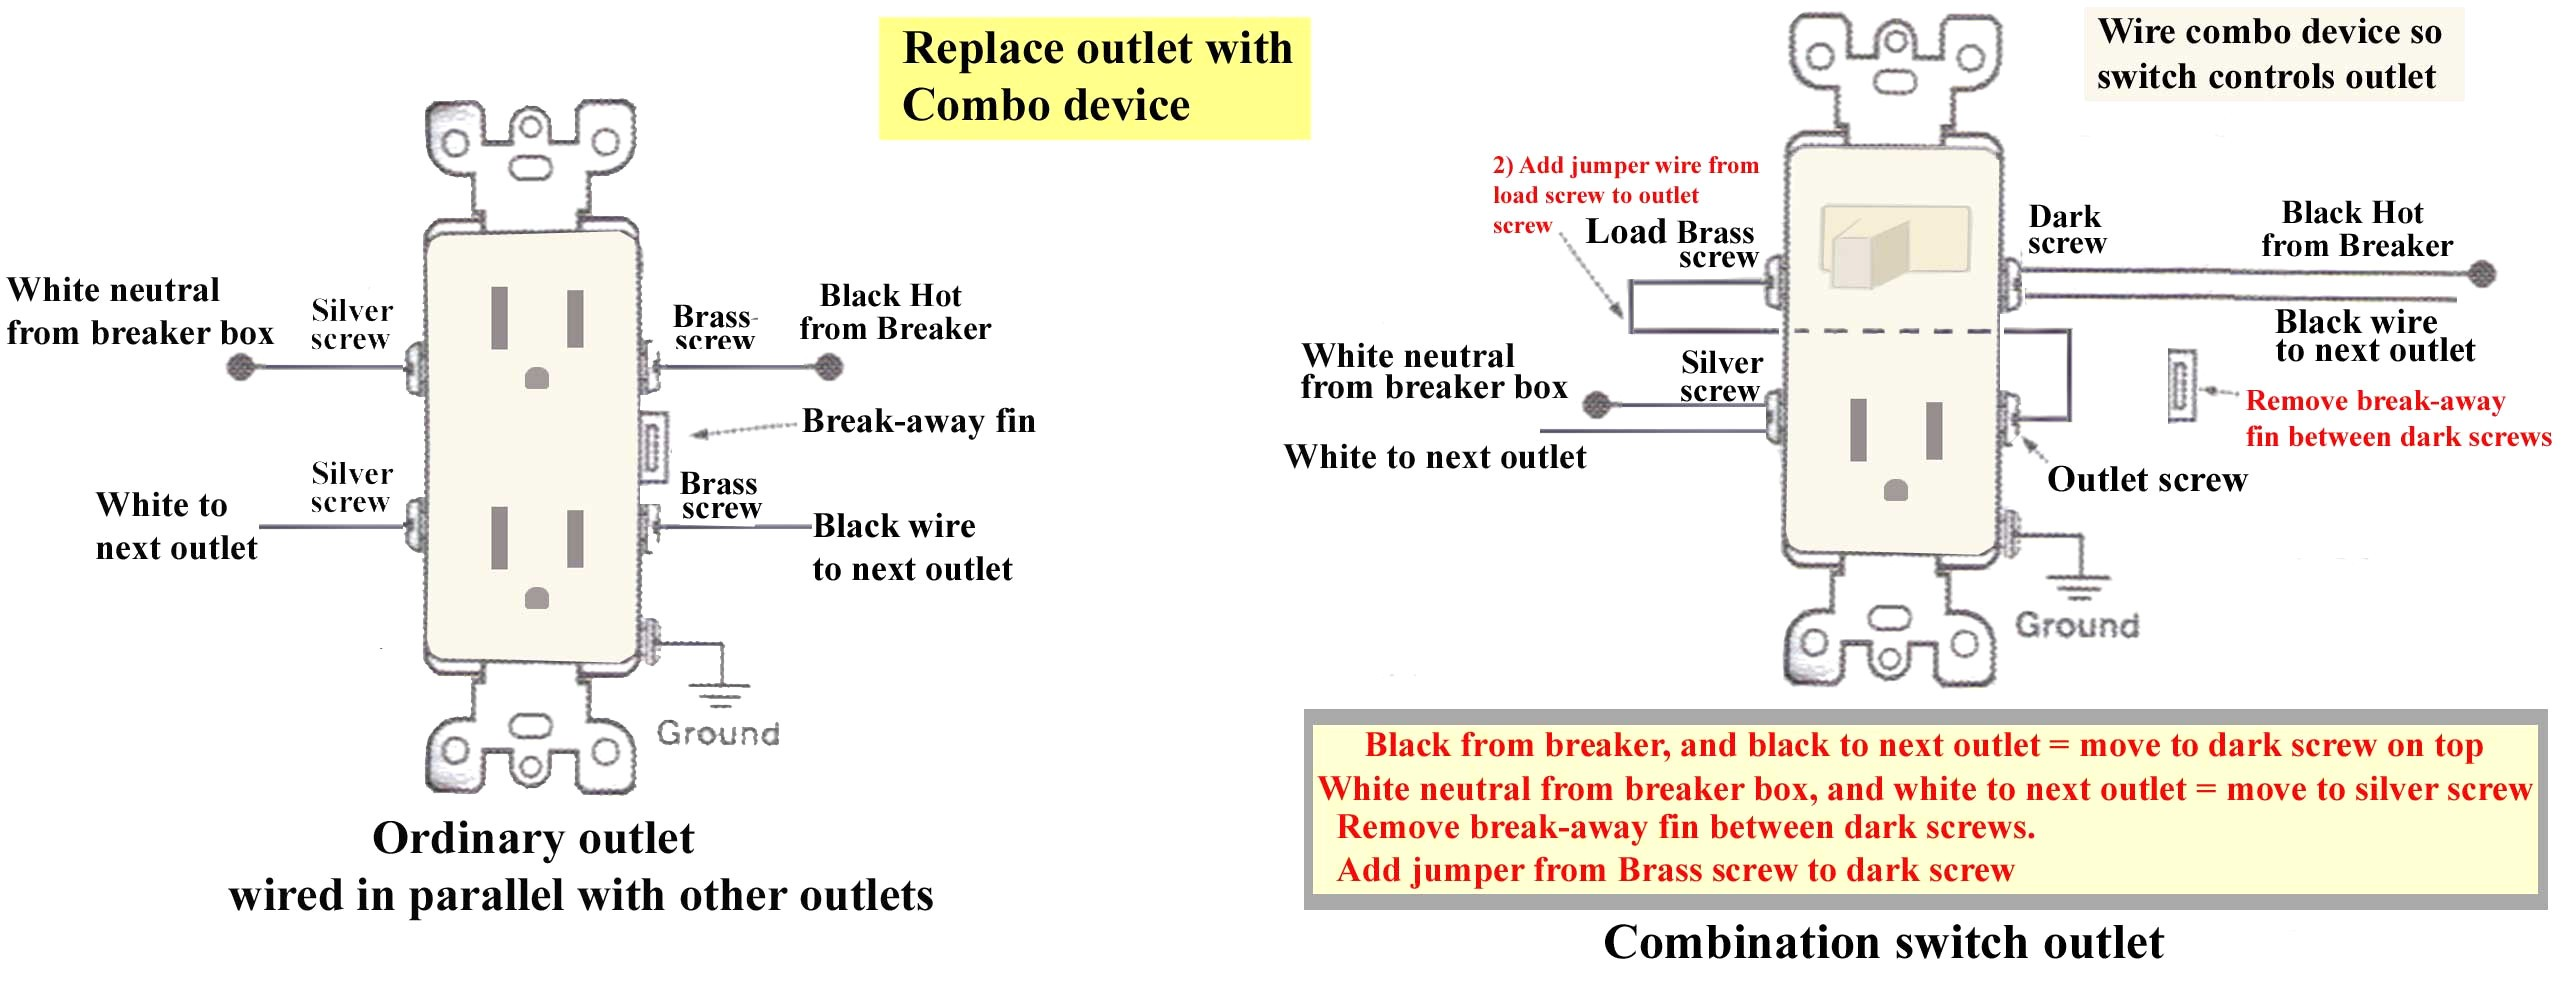 leviton switch outlet combination wiring diagram wiring diagram image rh mainetreasurechest com leviton combo switch receptacle wiring leviton combination two switch wiring diagram